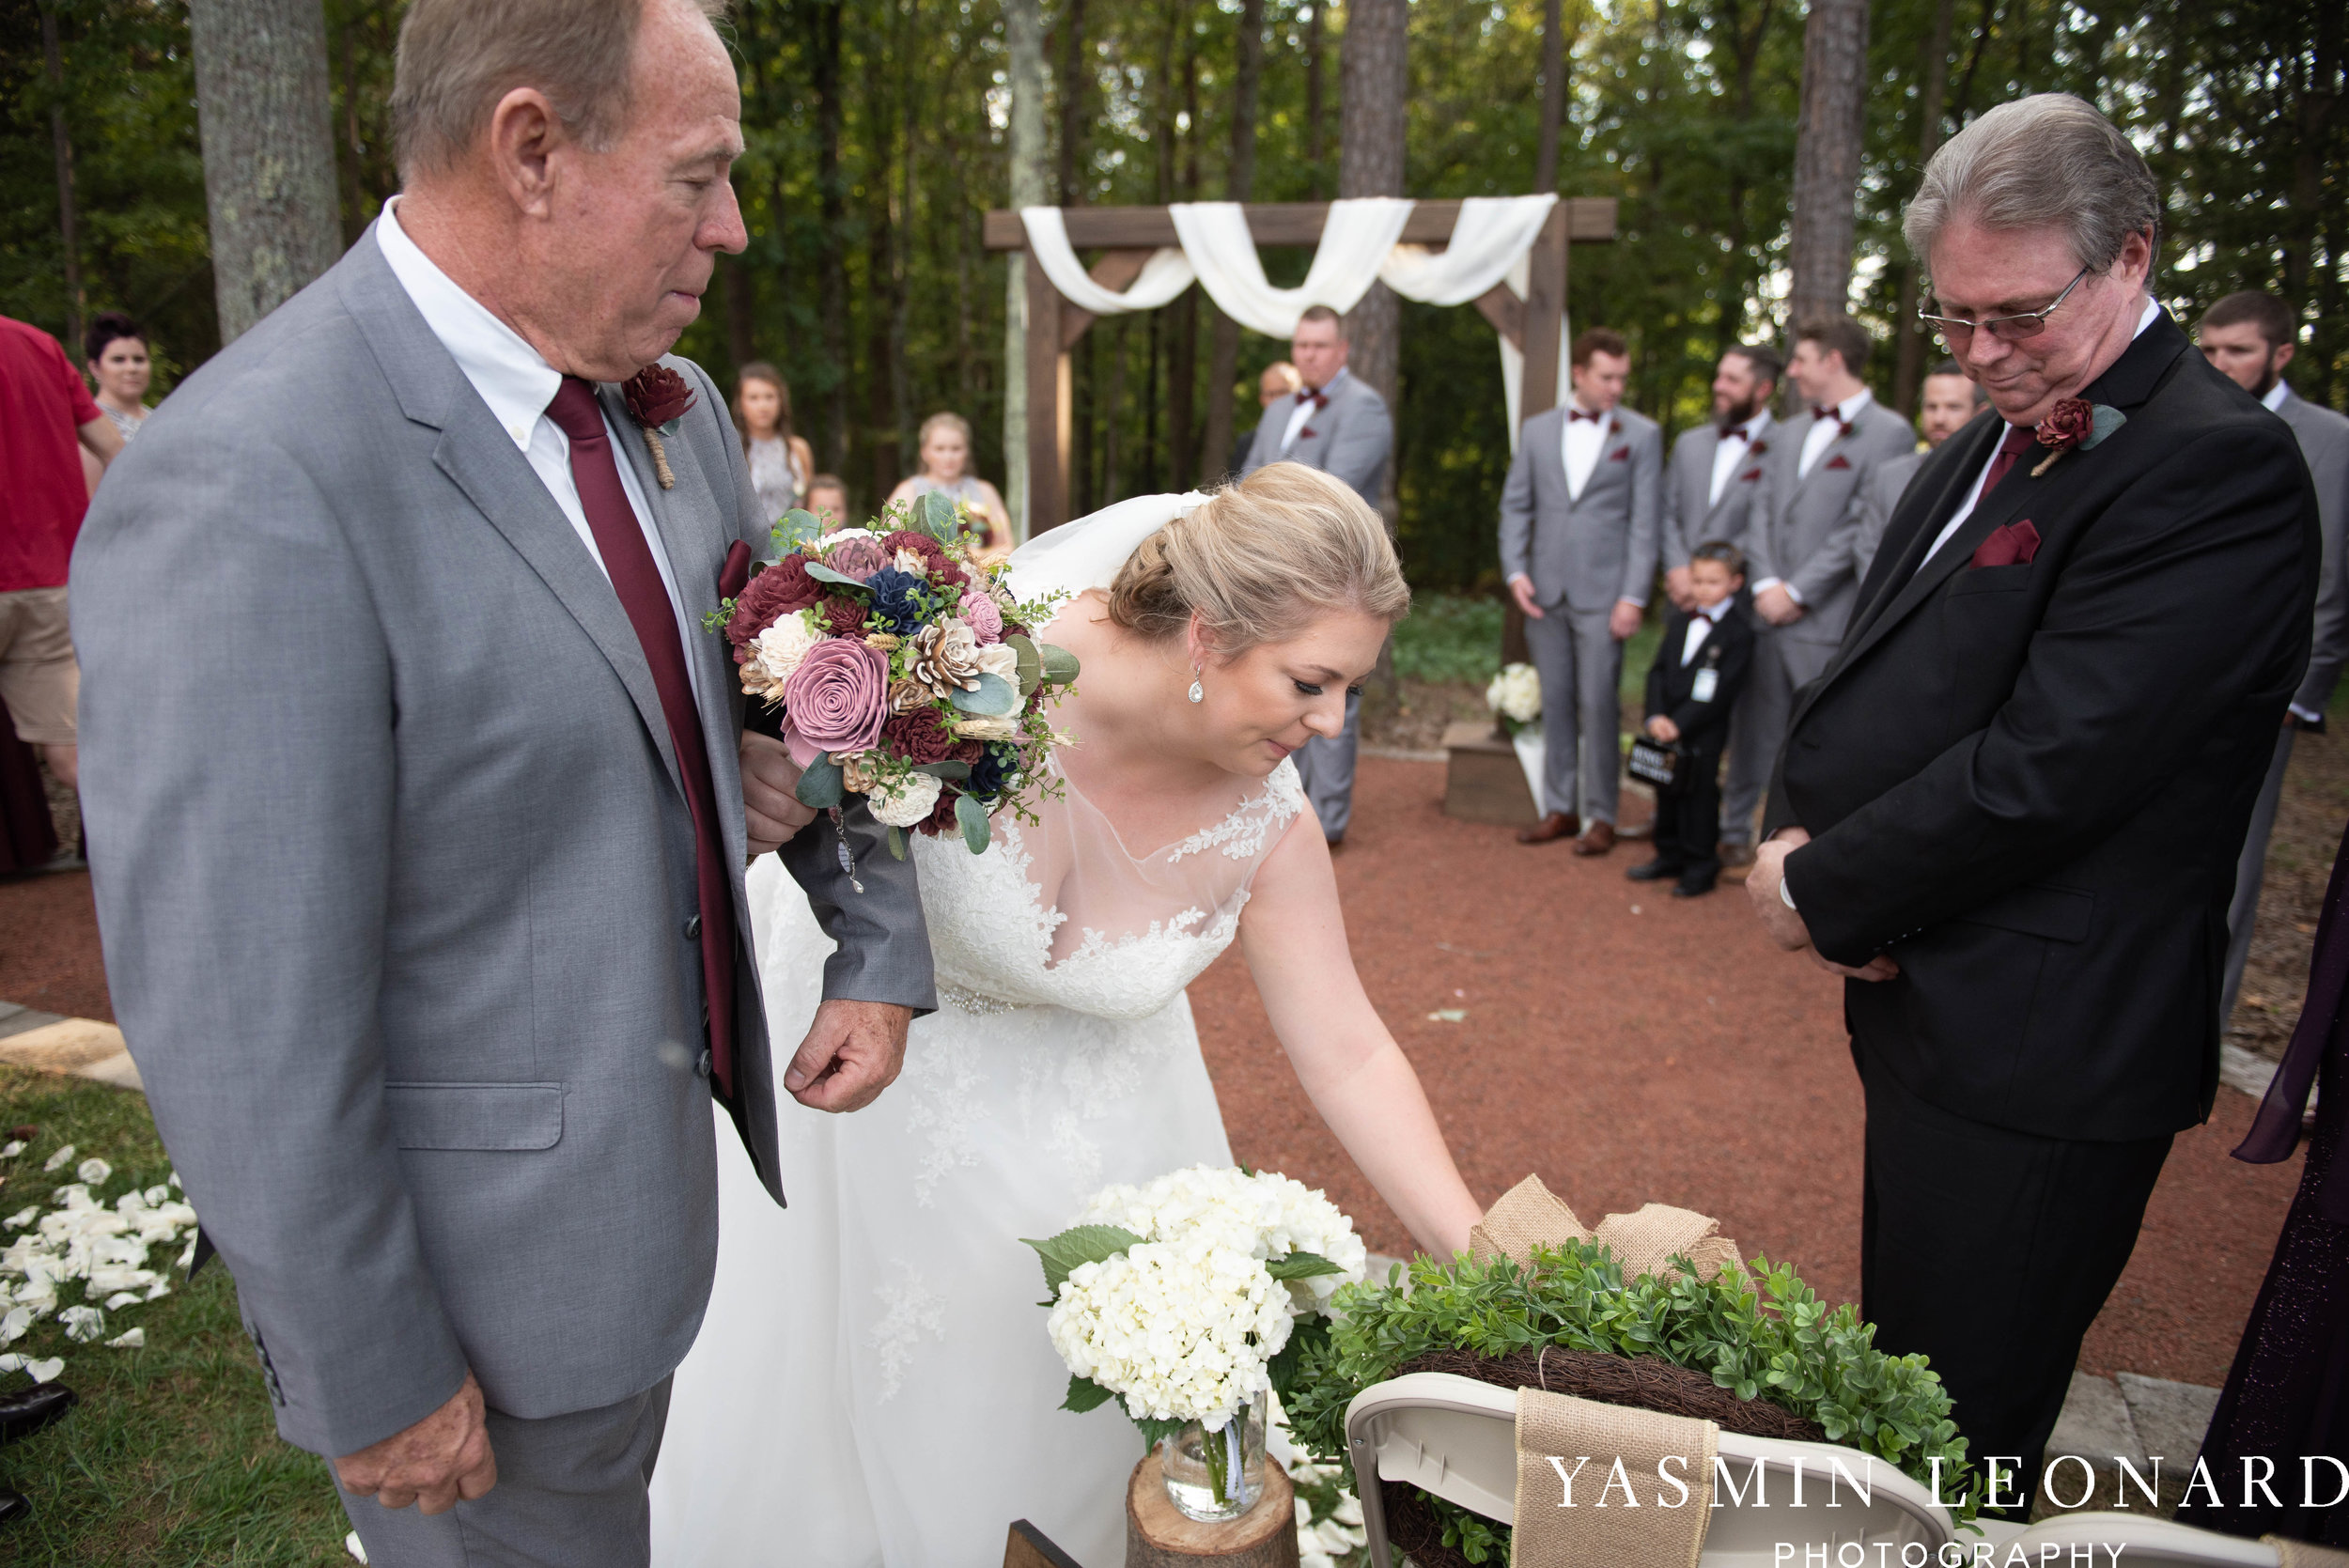 Danner Farms - NC Wedding Venues - NC Barns - Statesville NC - NC Wedding Photographer - High Point Wedding Photographer - Yasmin Leonard Photography-30.jpg